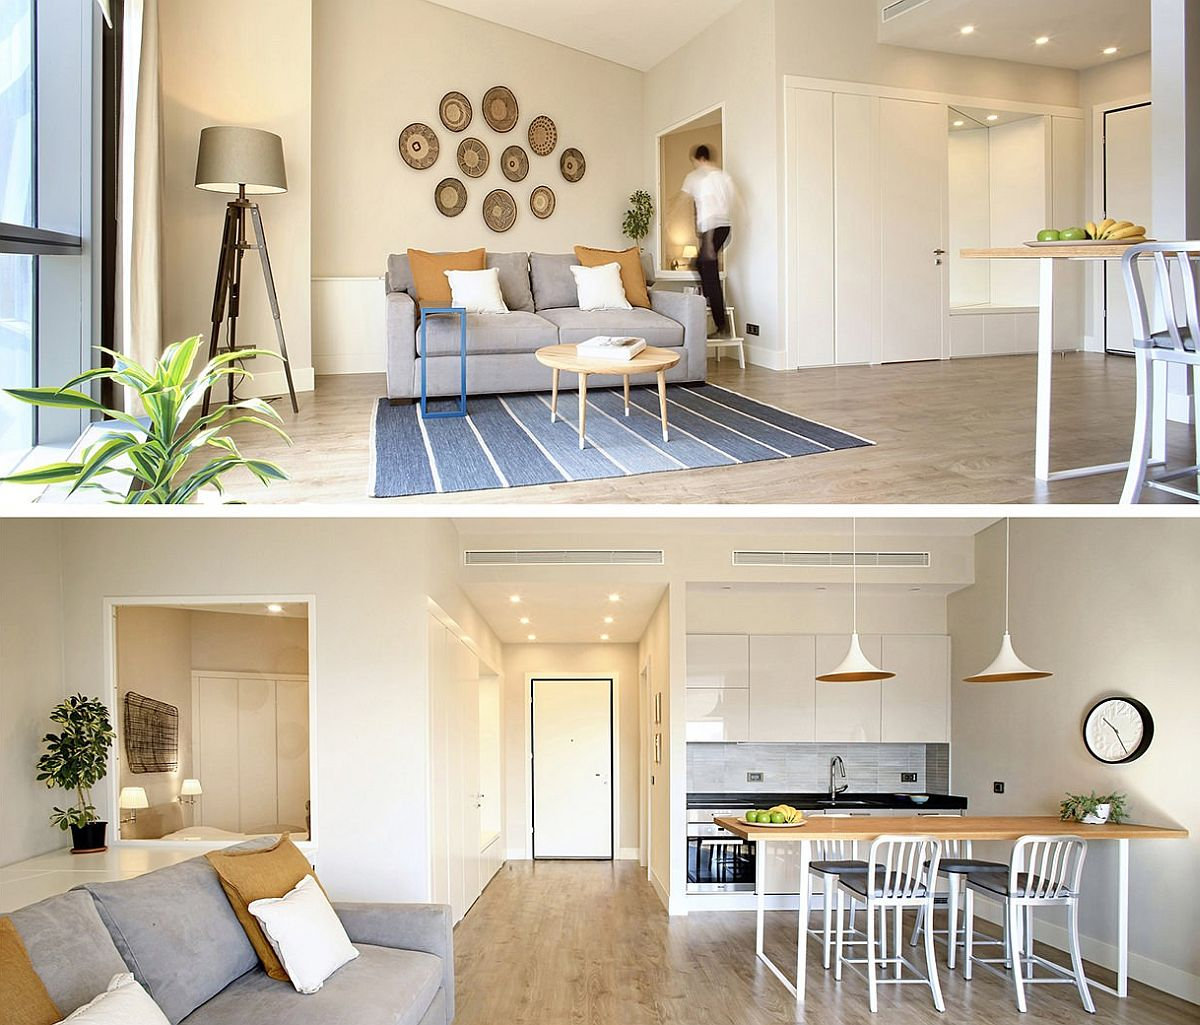 Giving the tiny apartment a fabulous modern makeover with smart kitchen and open living area